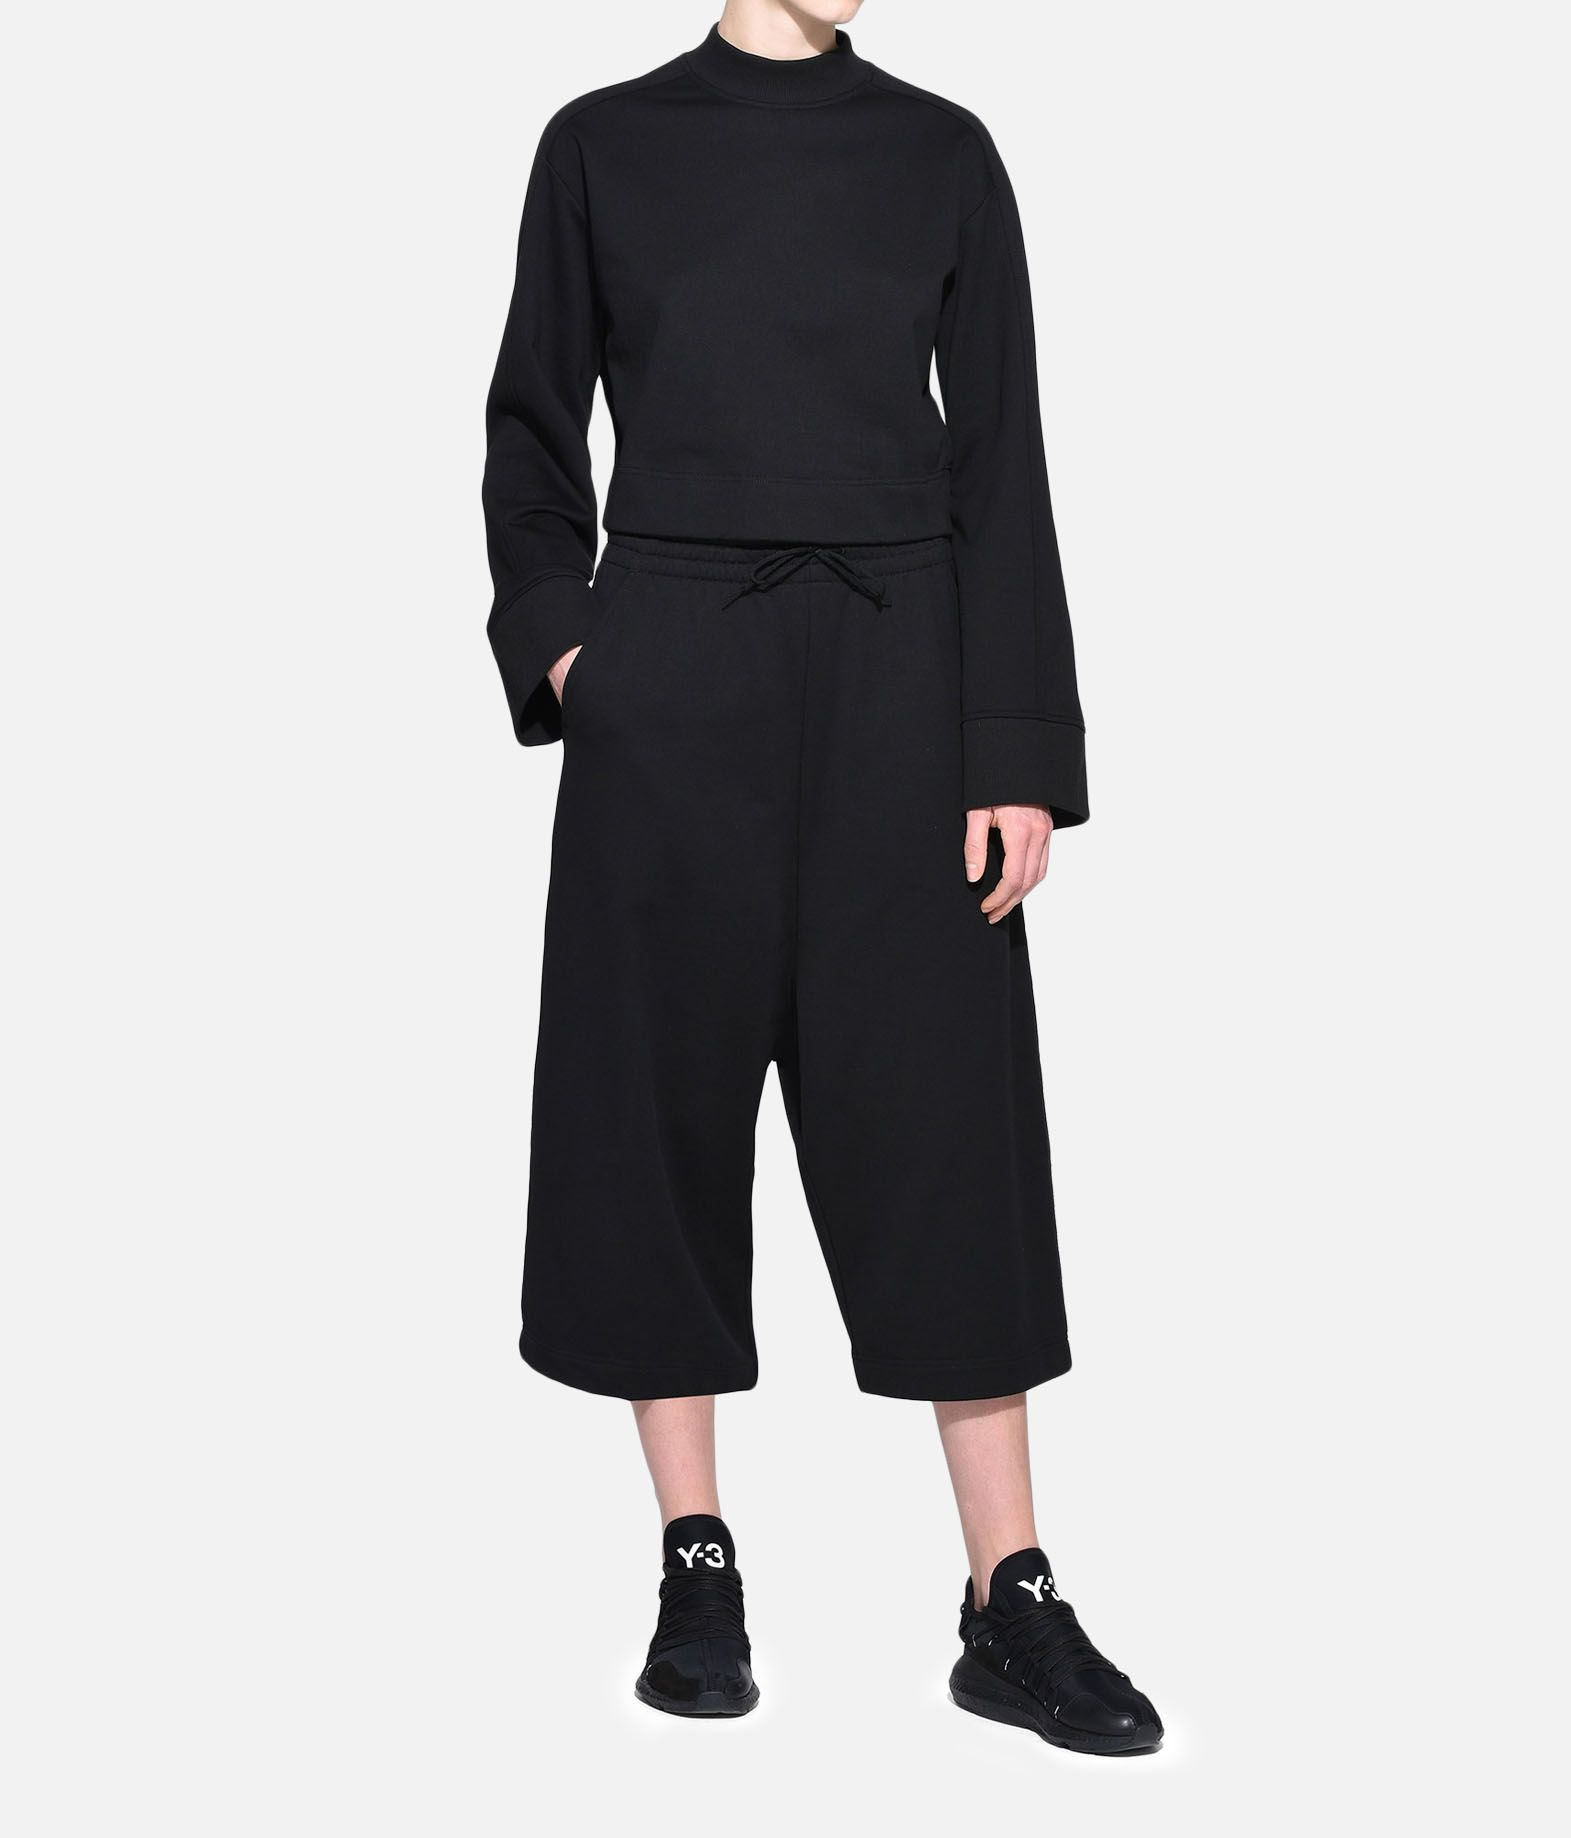 Y-3 Y-3 Wide Cropped Pants Cropped pant Woman a